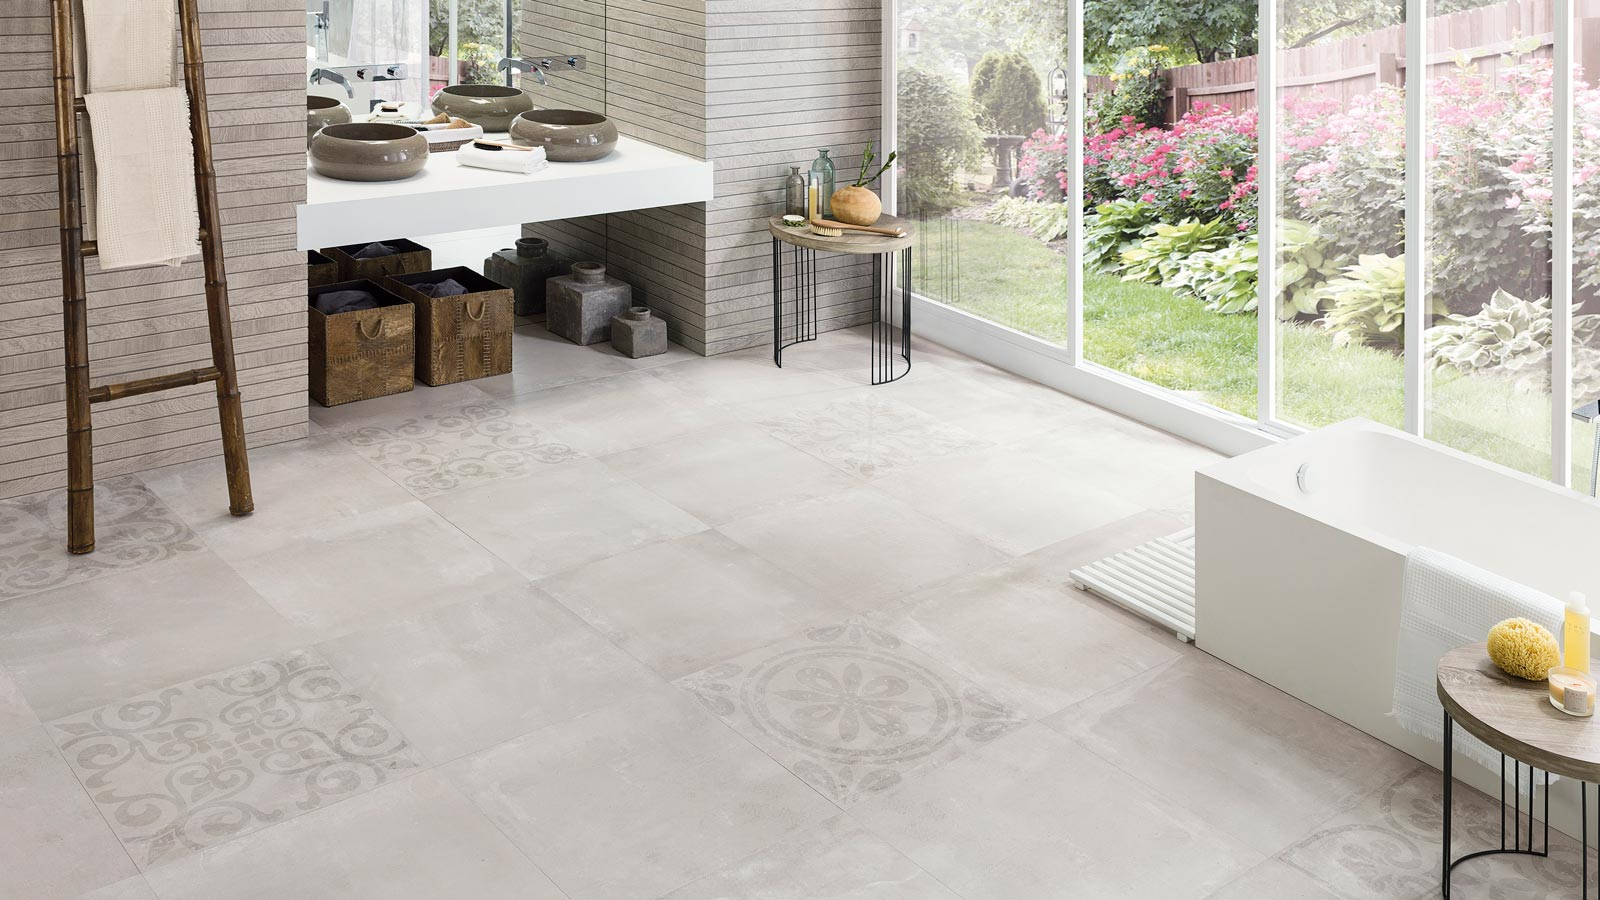 Guide for cleaning ceramic tiles